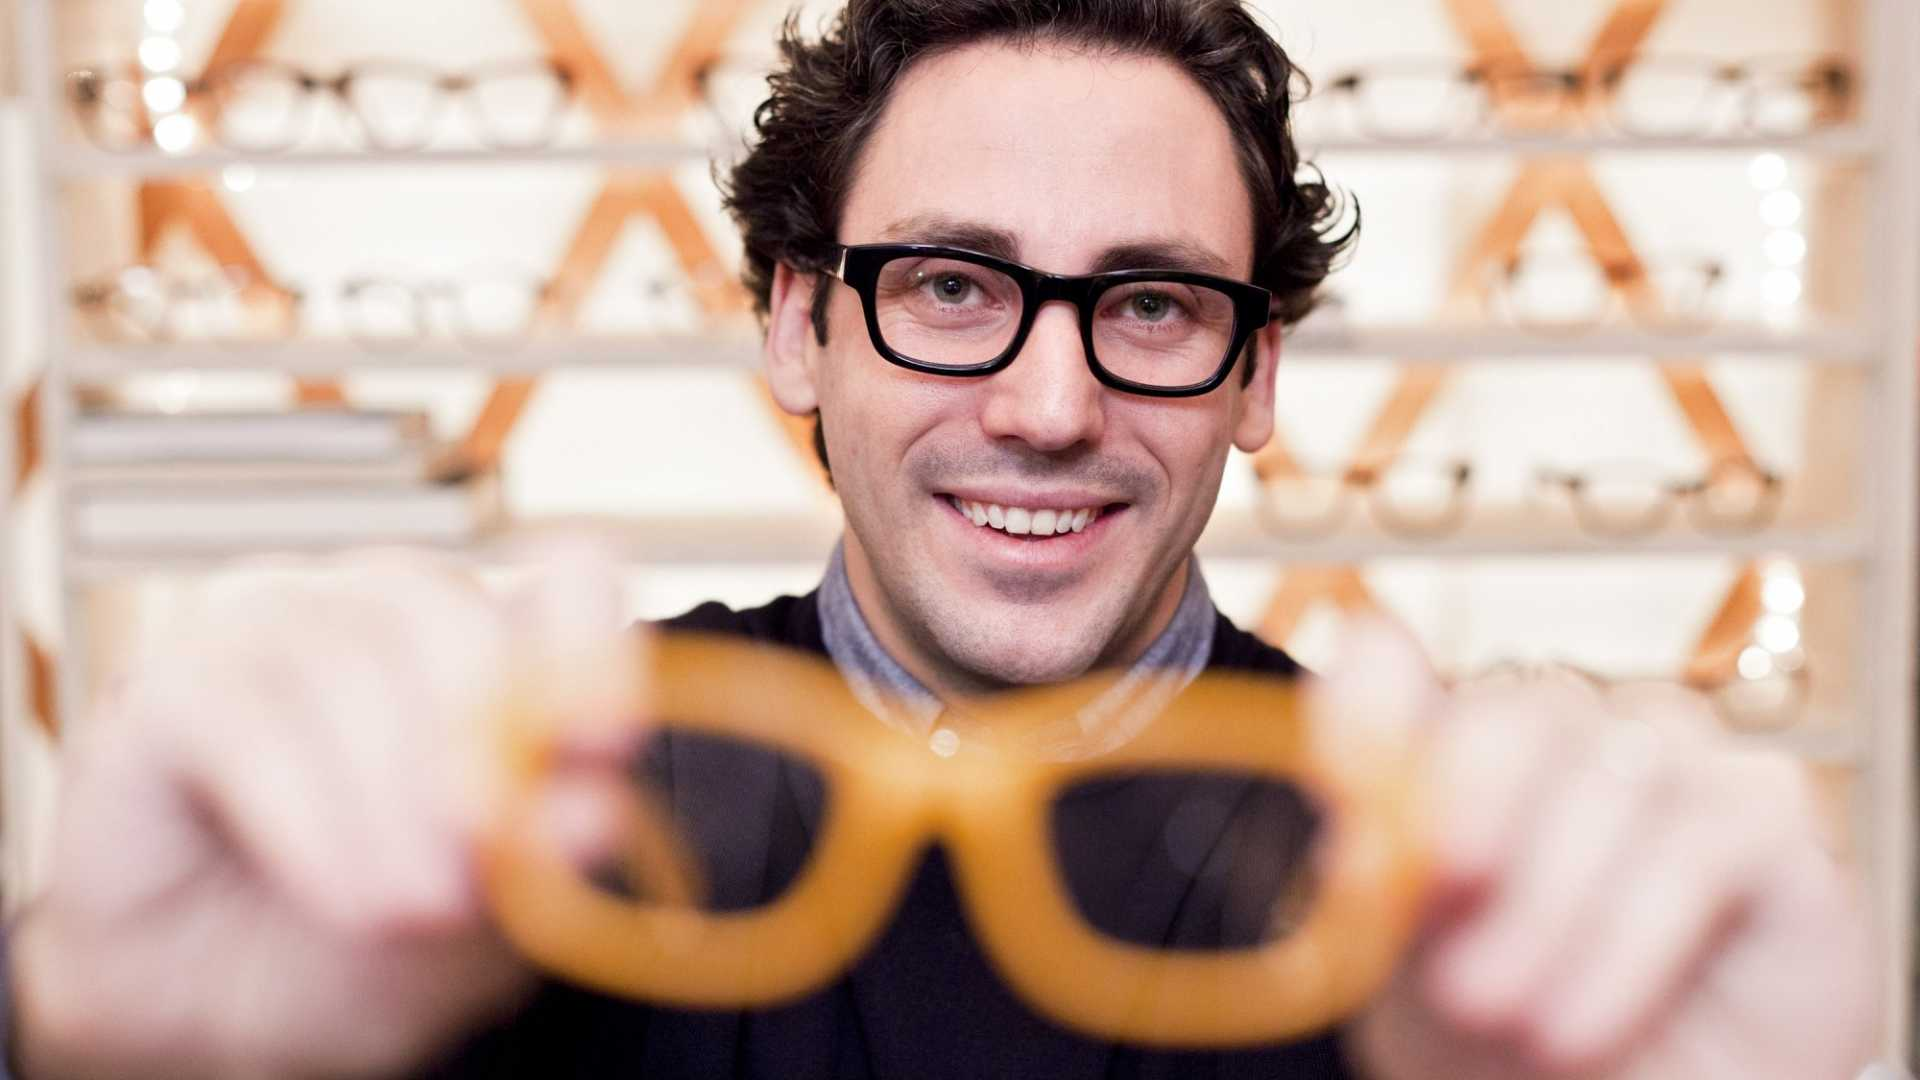 Warby Parker co-founder Neil Blumenthal built an empire by disrupting the institutional players in the eyeglass industry. But can other startups emulate Warby's success?